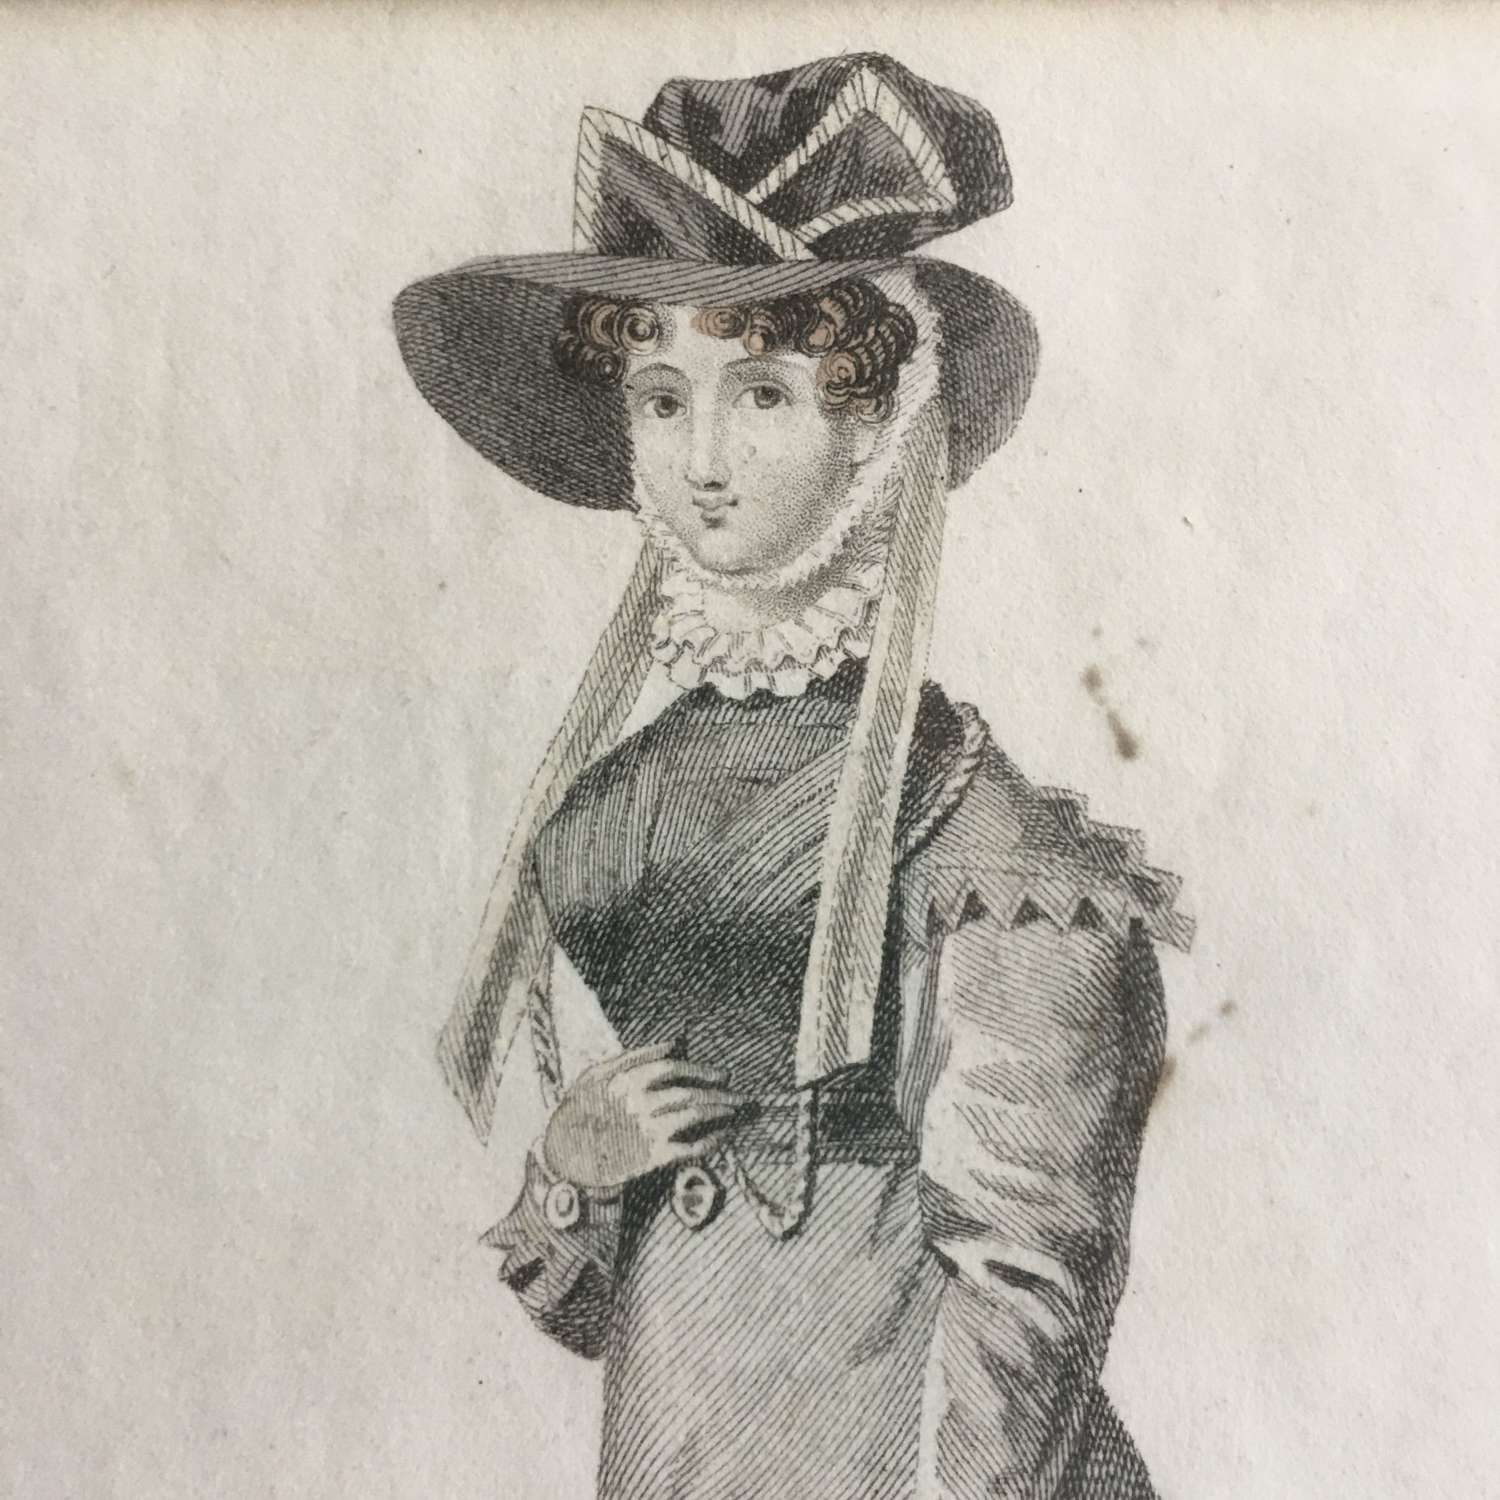 1826 print Of lady in 'Walking Dress'